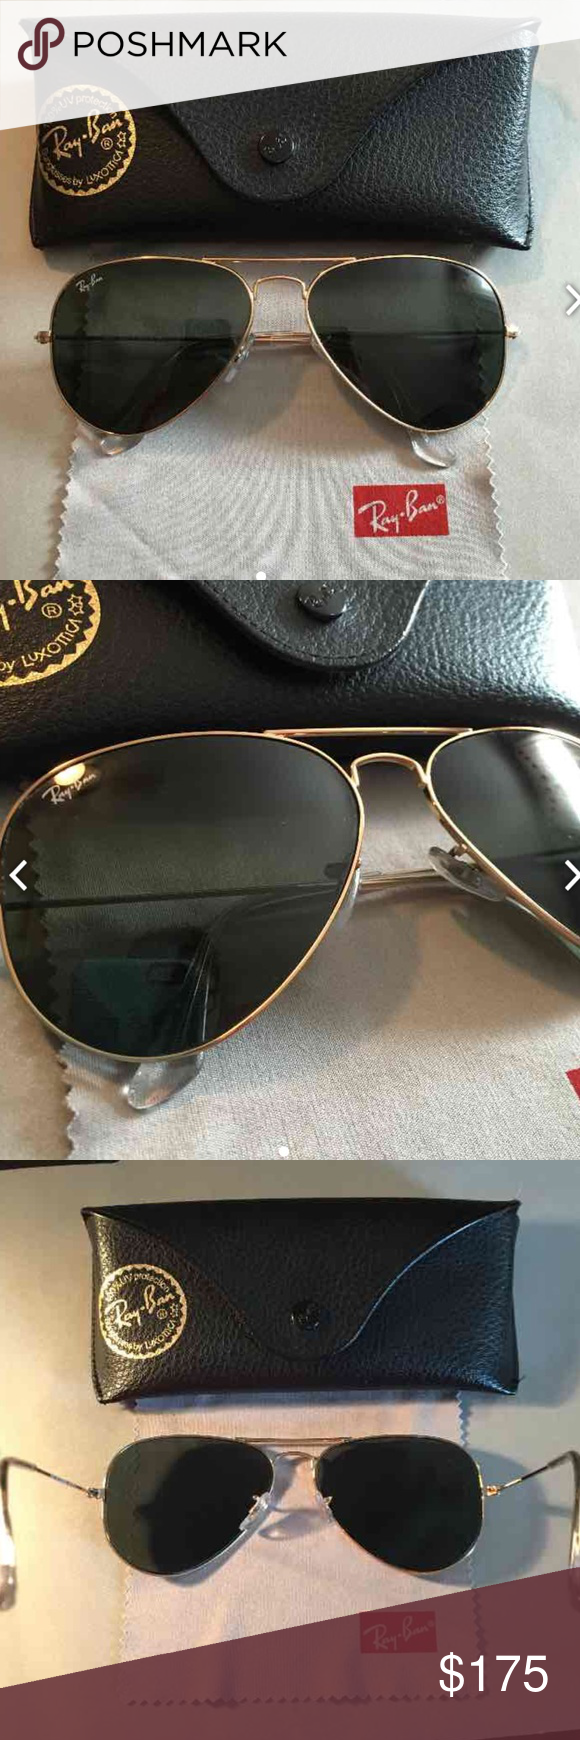 22ffb6a4f37 Comes with original black Ray ban case and lens cloth. Side arm of  sunglasses read